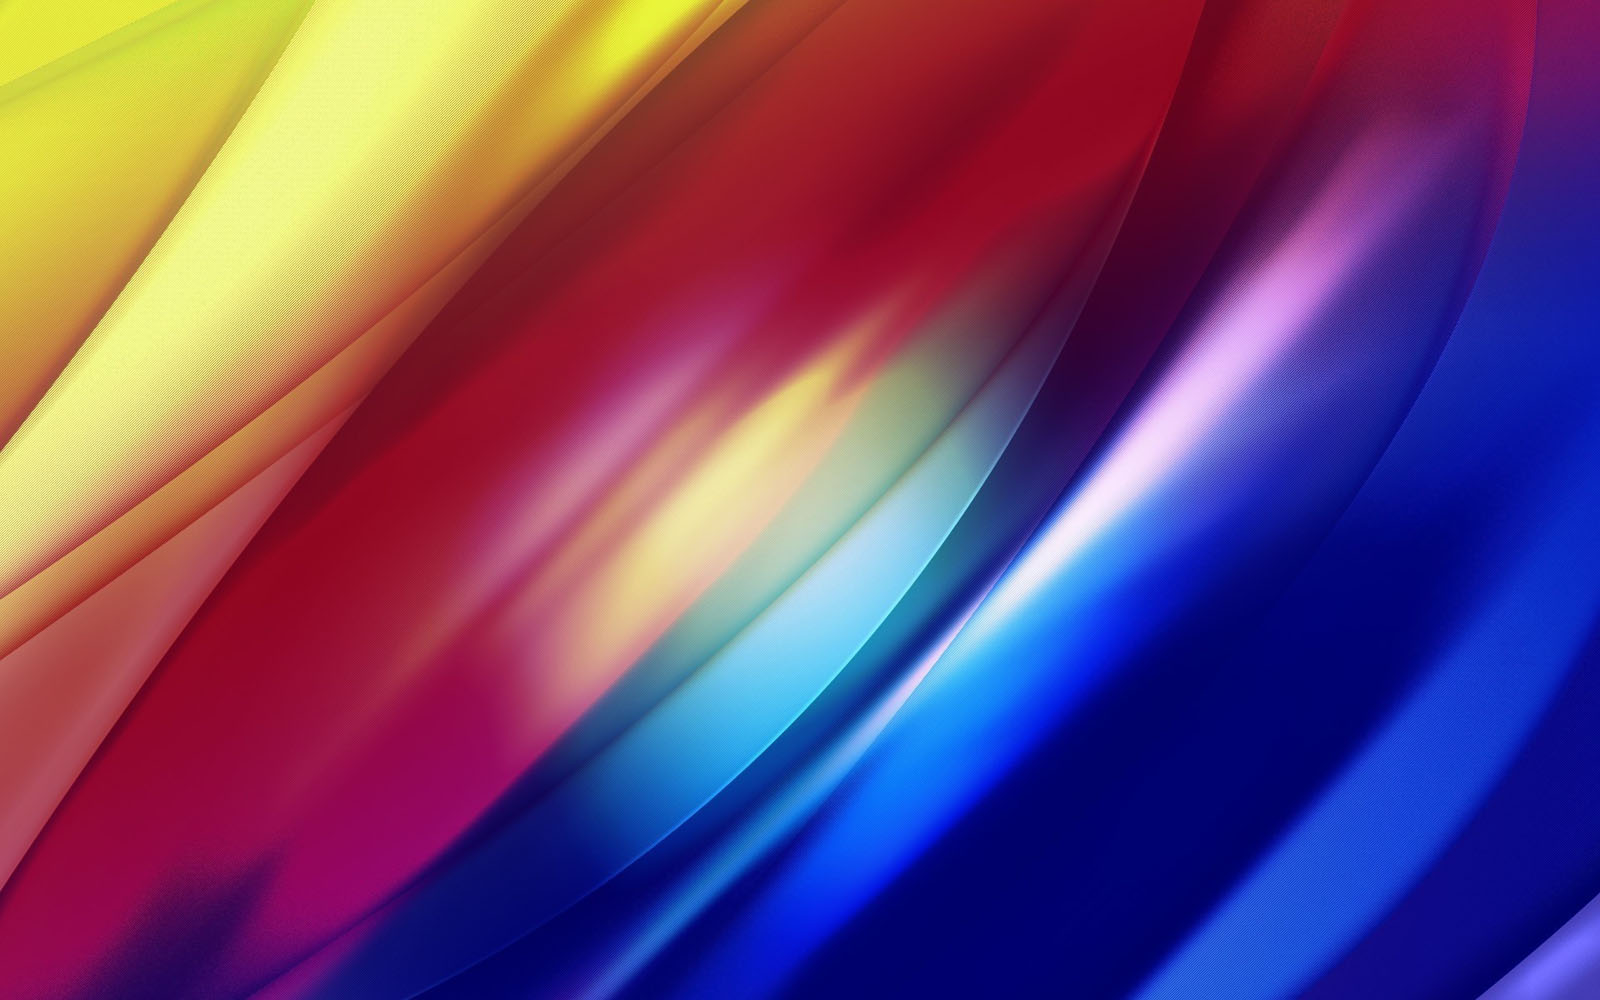 Wallpapers: Abstract Waves Wallpapers